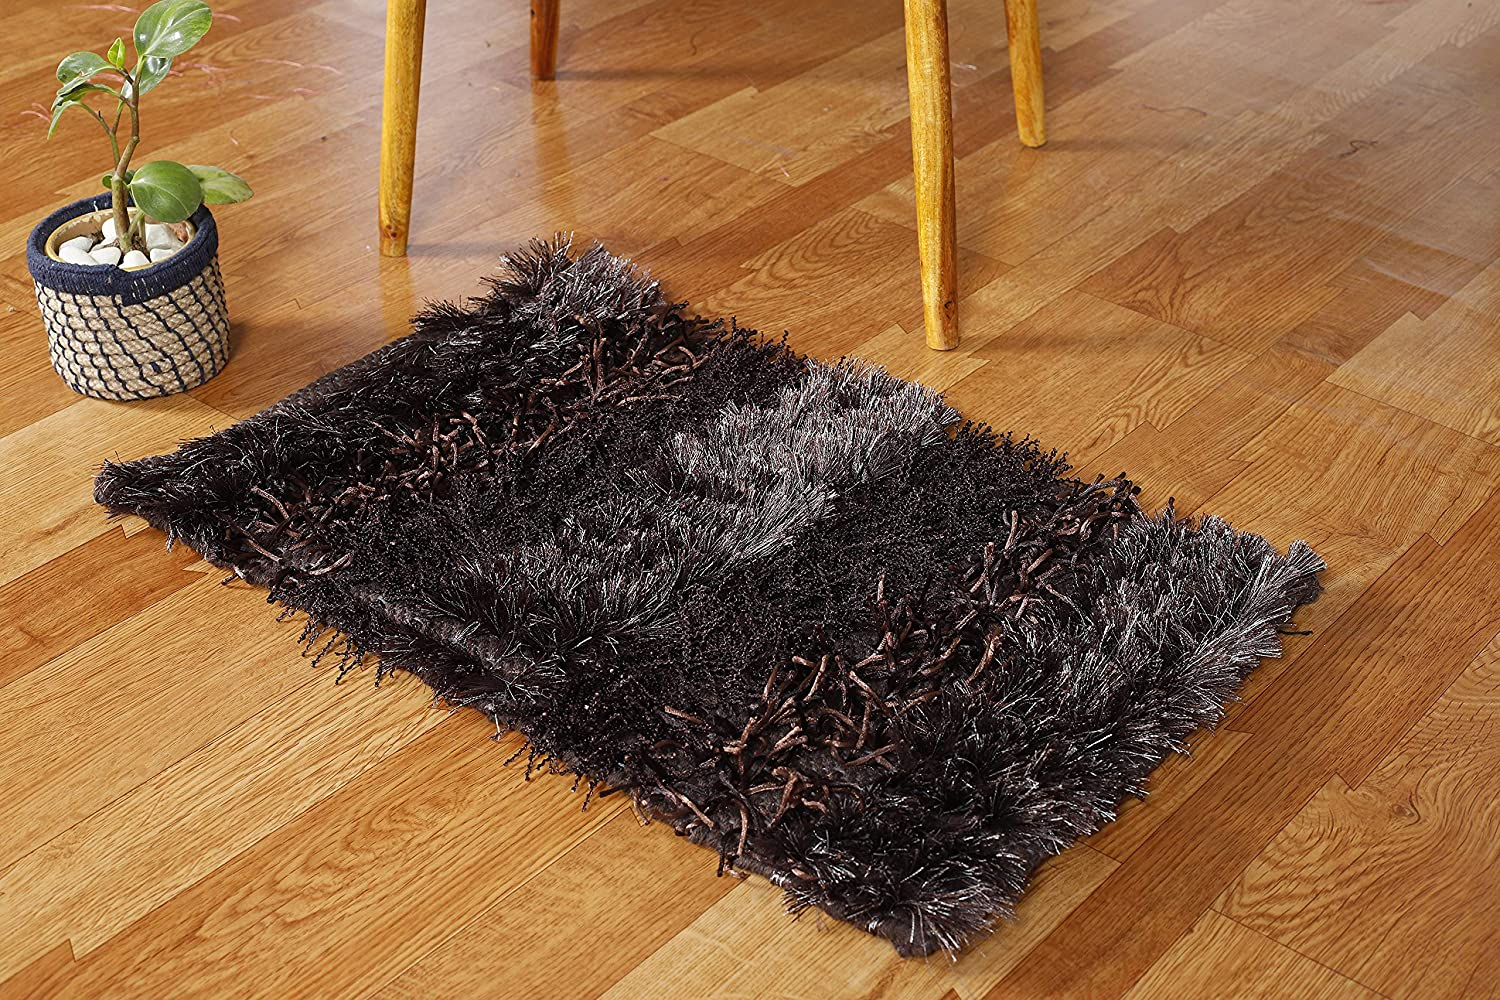 Comparing Commercial Carpet Squares and Traditional Rolled Carpets